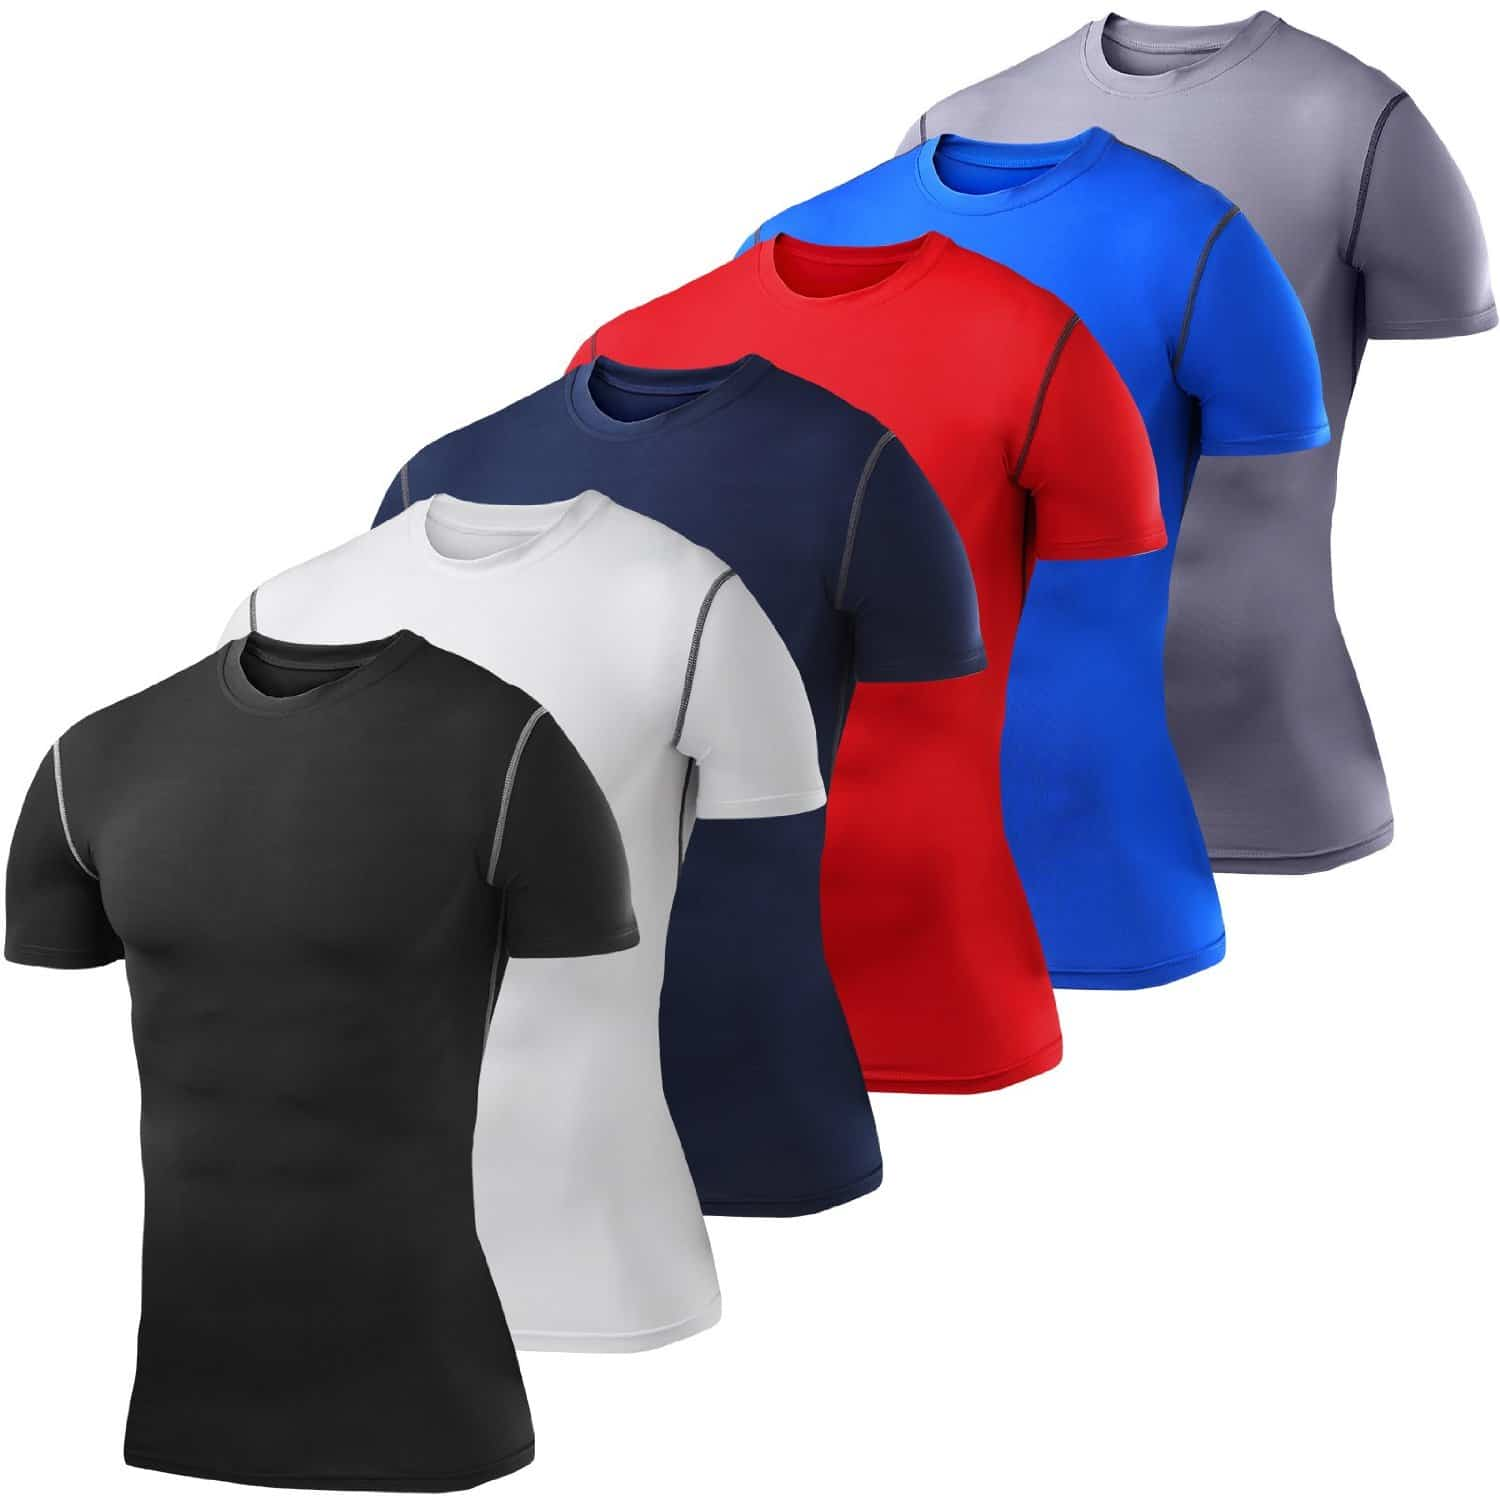 Top 10 Best Men's Compression Top for Athletic in 2020 Review